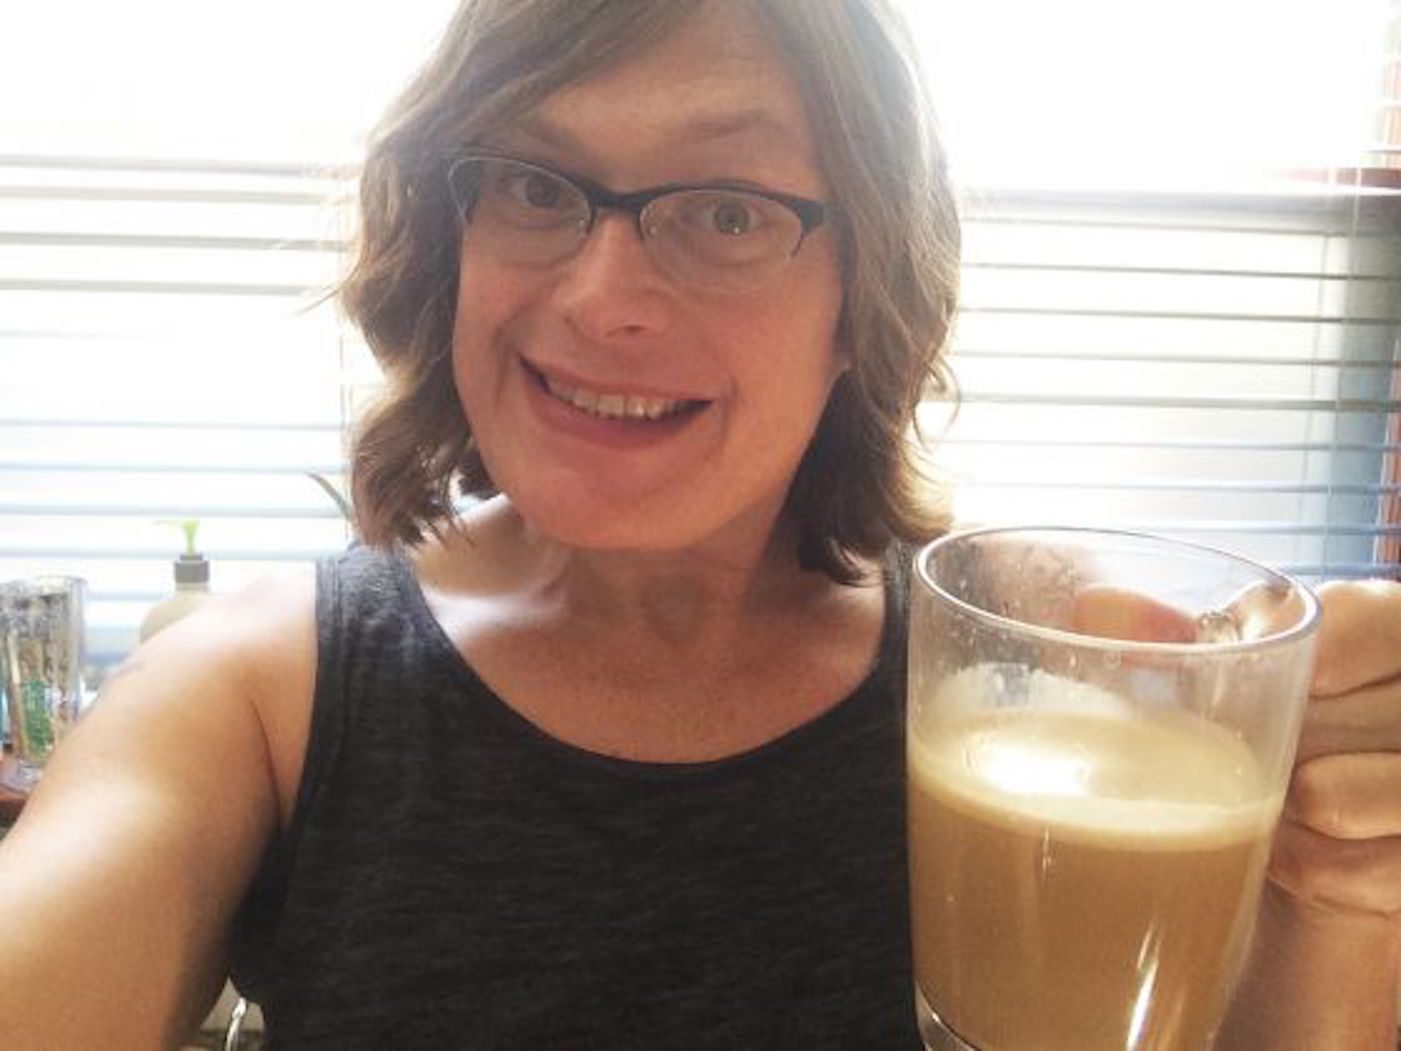 Filmmaker Lilly Wachowski, Formerly Andy, Comes Out as Transgender